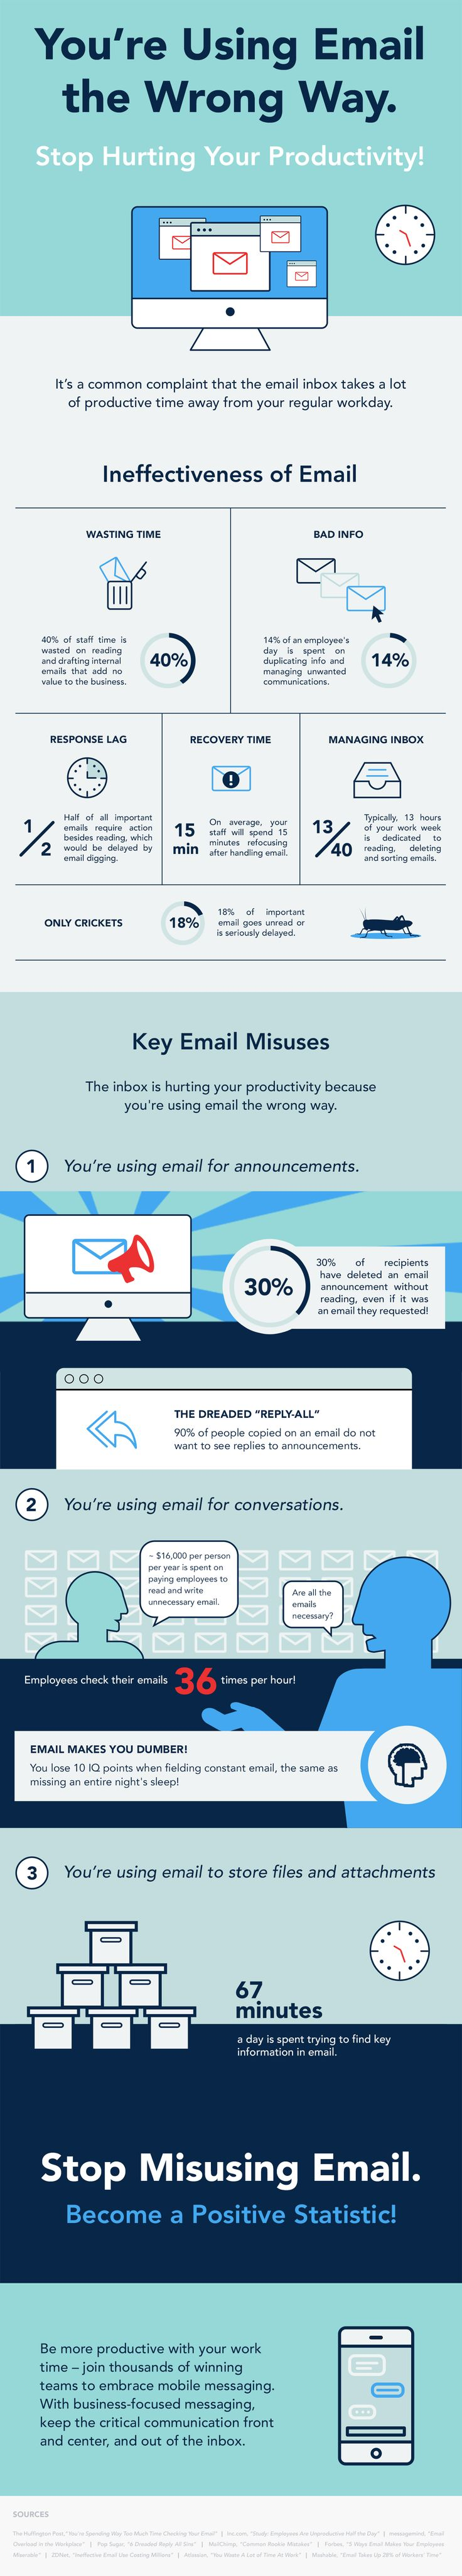 You're using email the wrong way -- and wasting time and money!